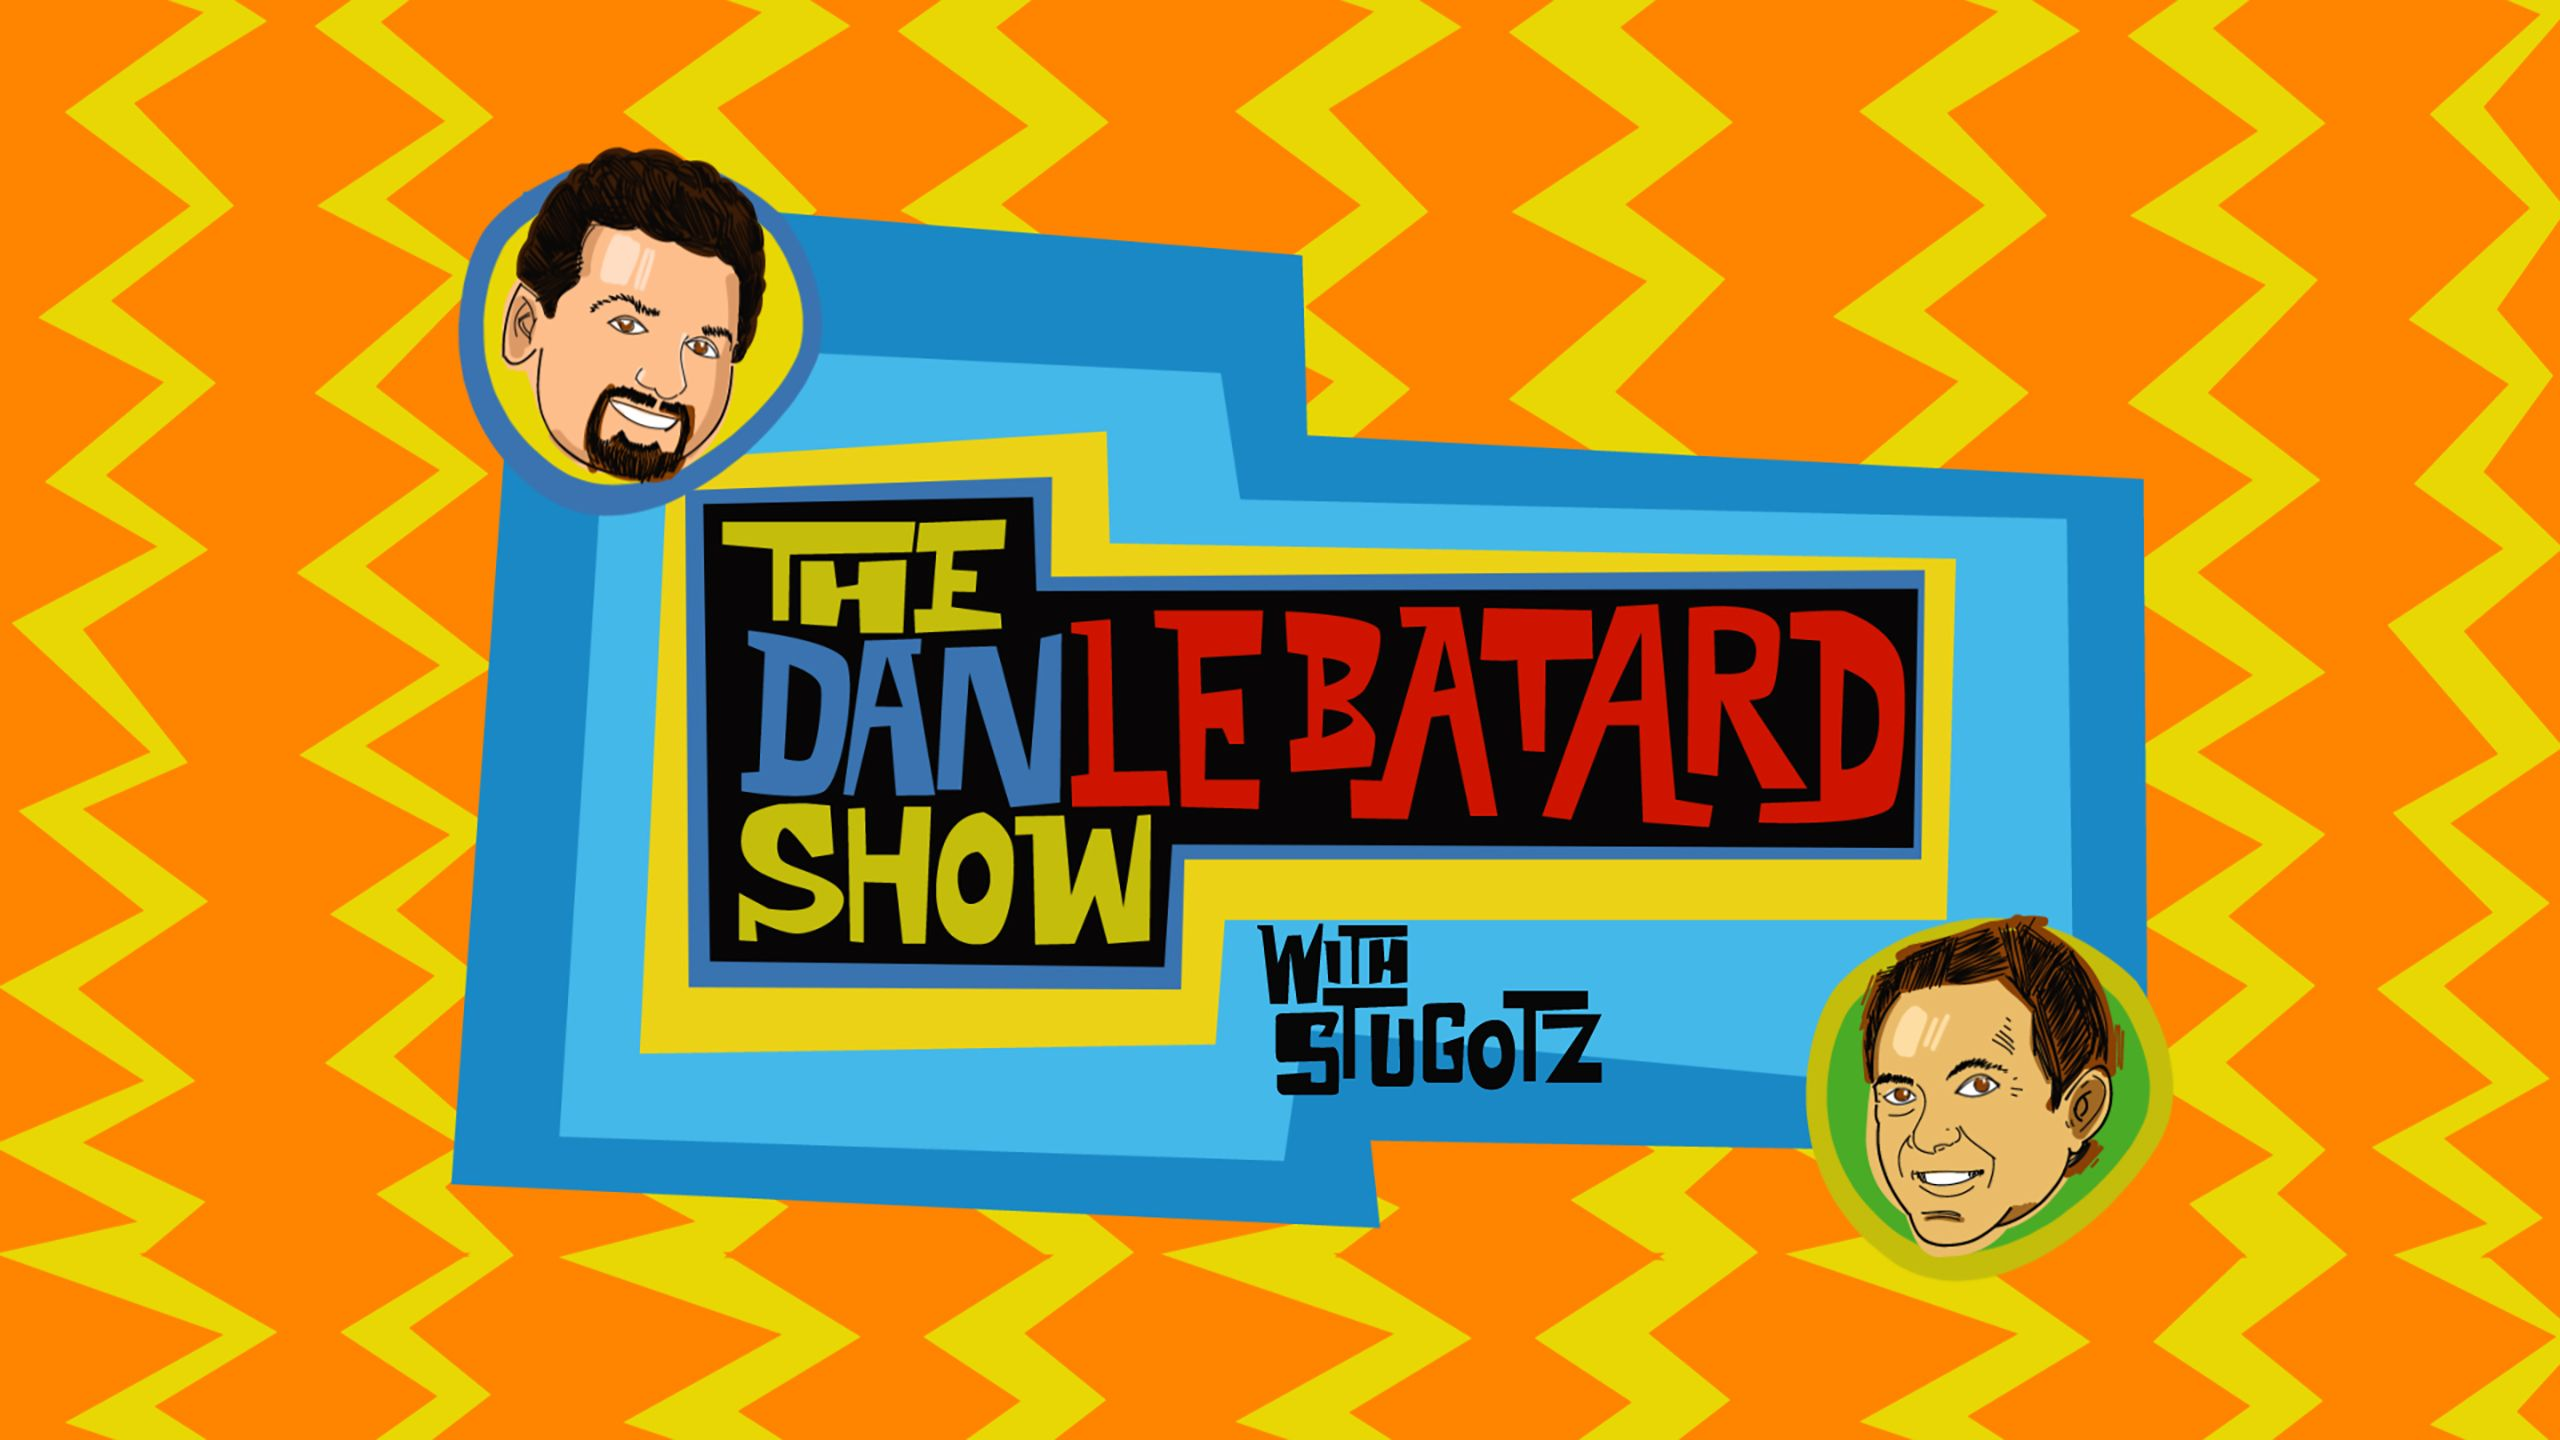 Fri, 2/23 - The Dan Le Batard Show with Stugotz Presented by Progressive